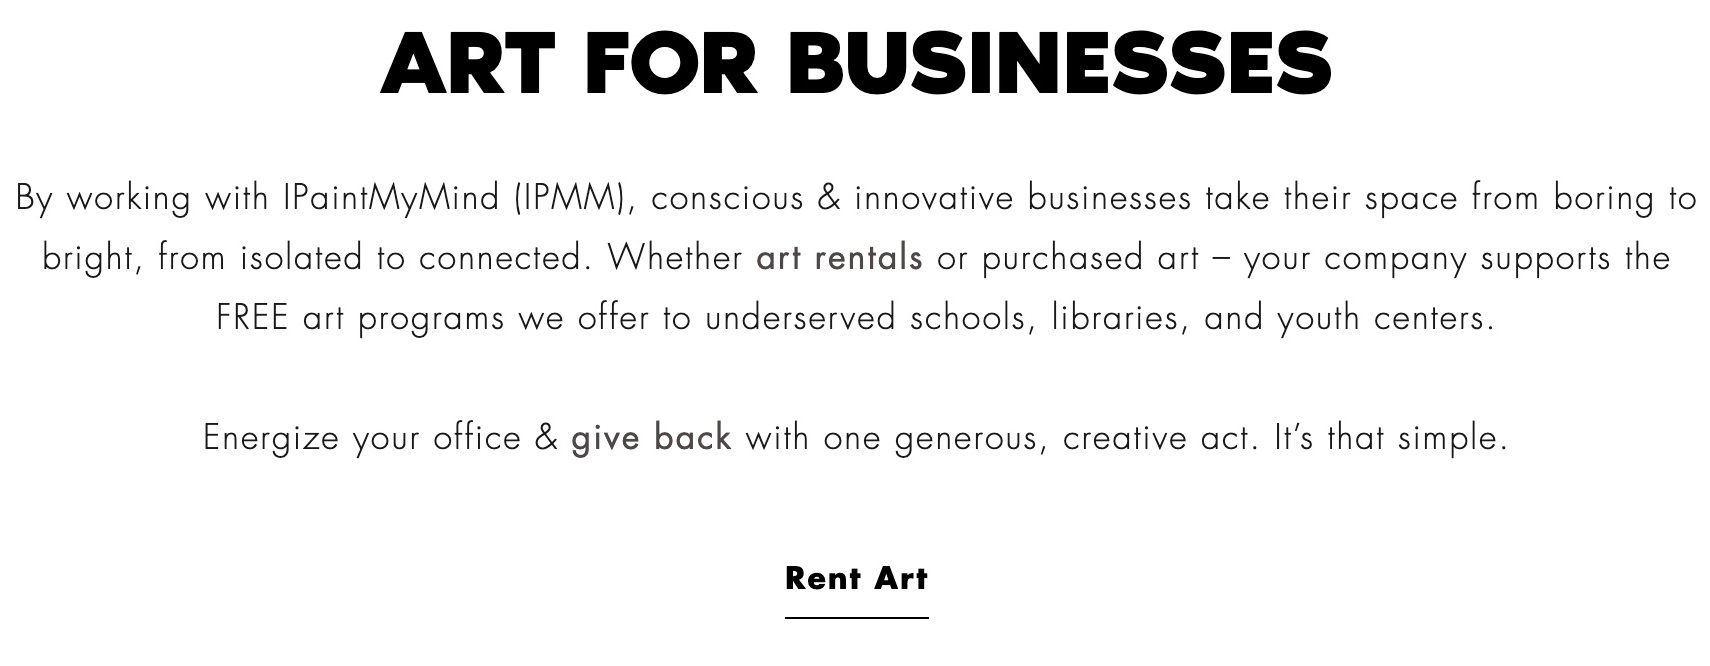 Art+for+Business_I+Paint+my+Mind.jpg